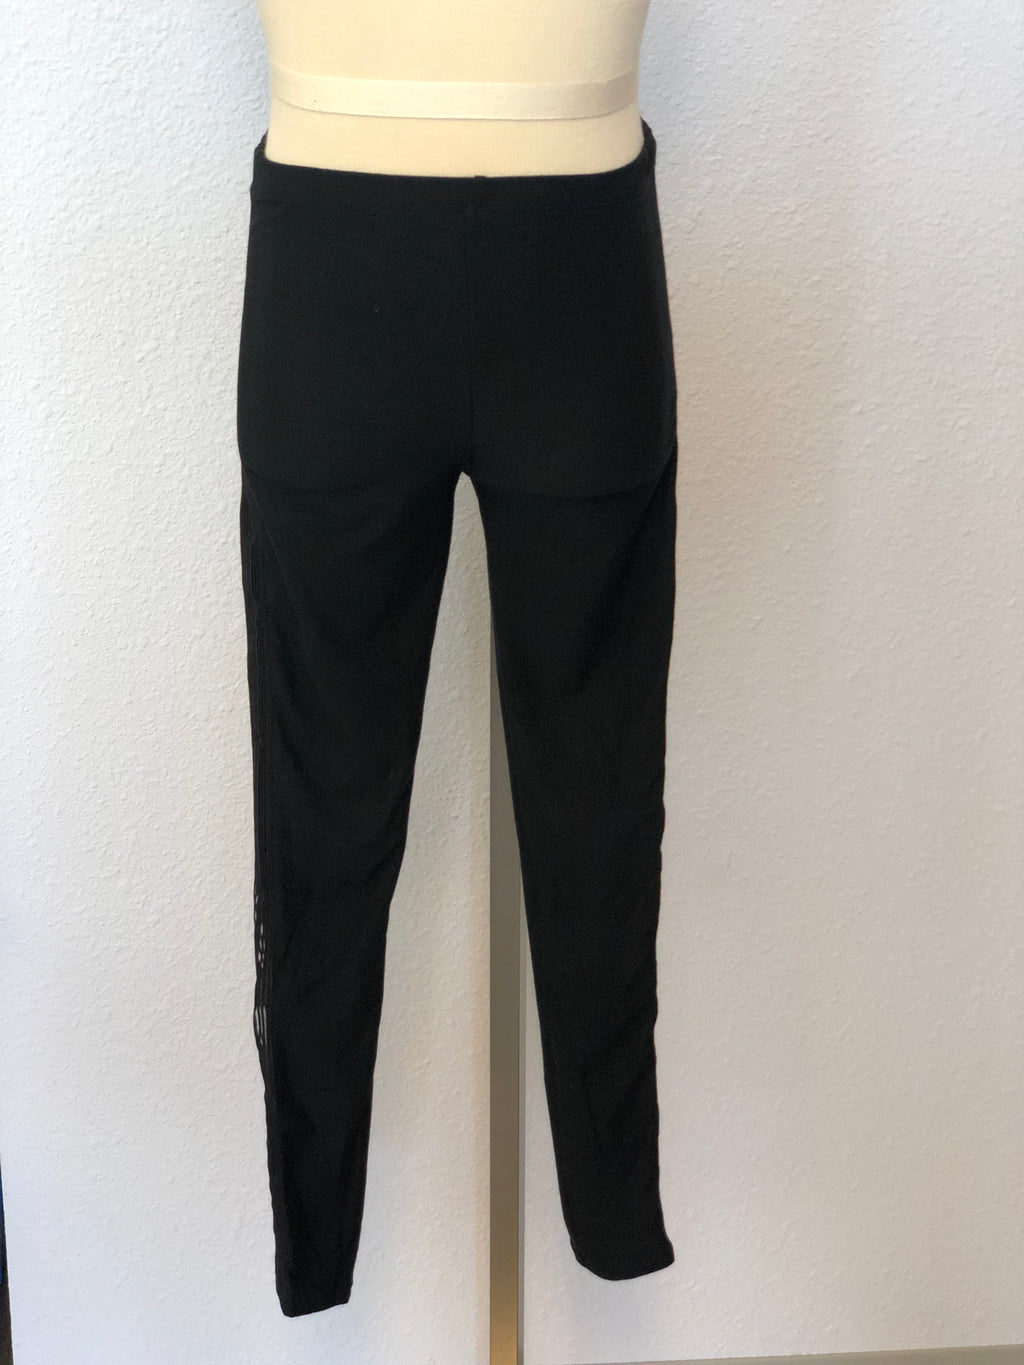 K CUTOUT LEGGINGS